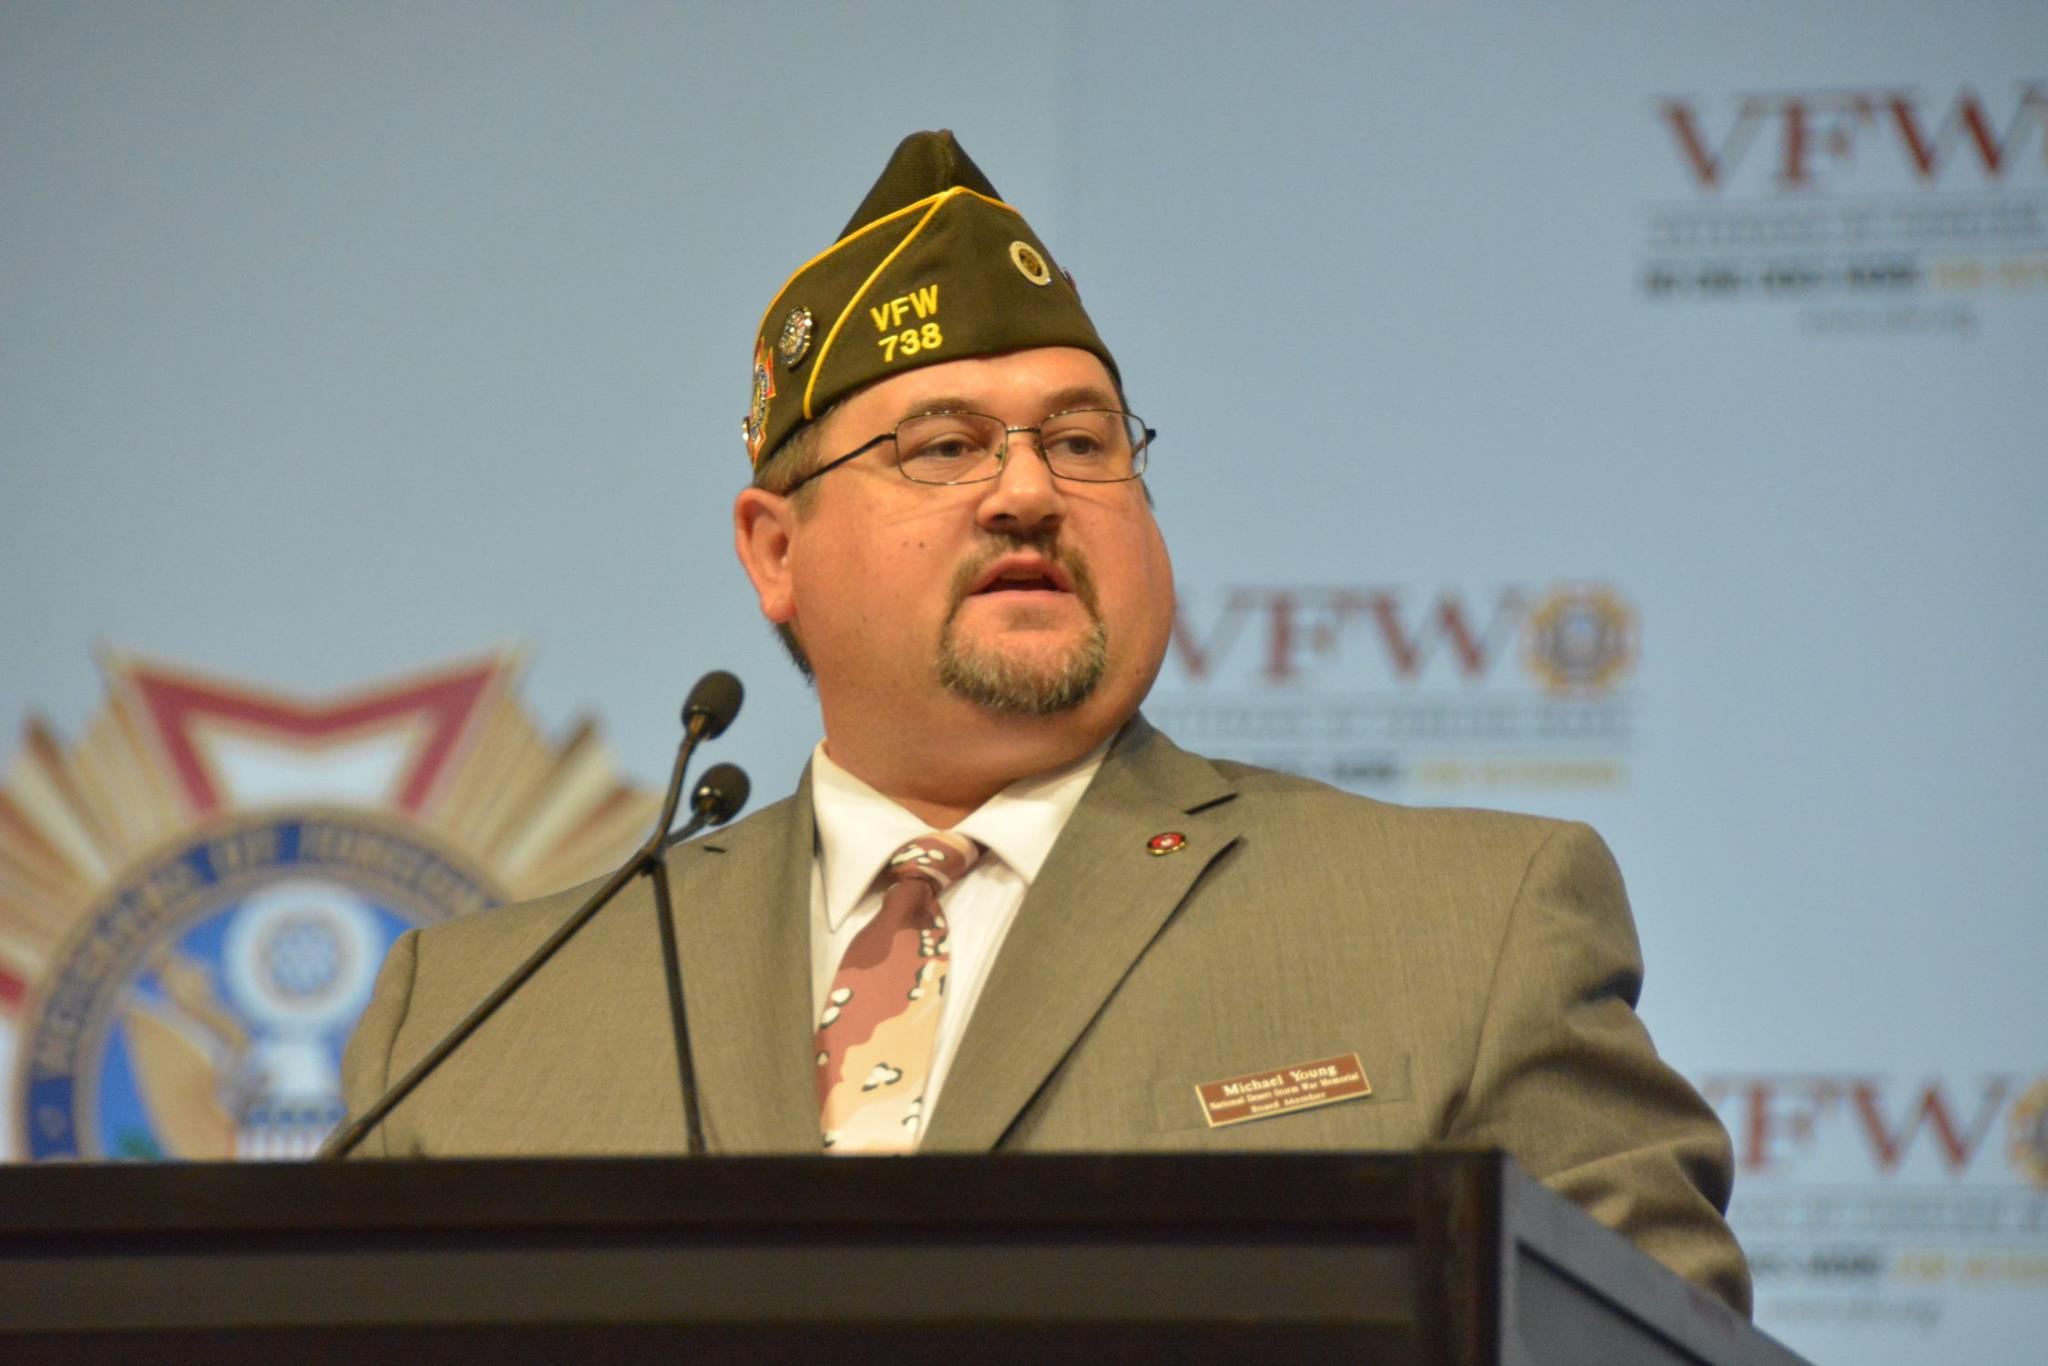 NDSWM Board Member Michael Young gave an update on the progress to build the National Desert Storm and Desert Shield Memorial at the 118th VFW National Convention in New Orleans.